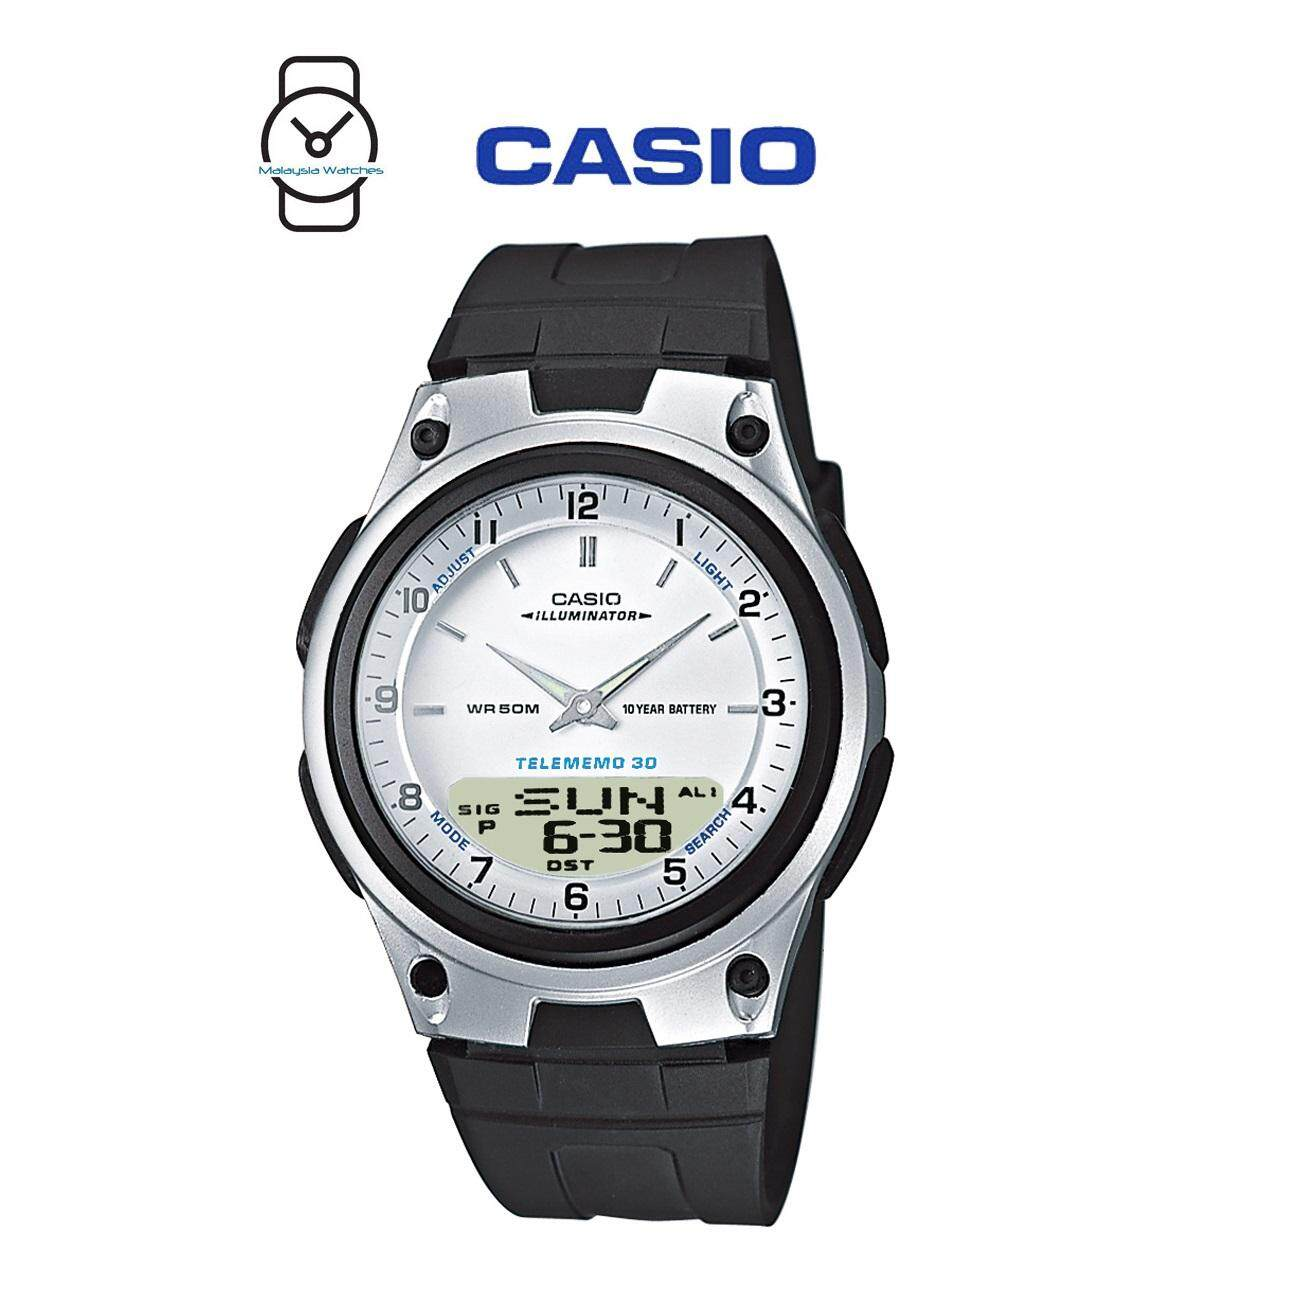 Features Casio Aw 80 7avdf Telememo 10 Years Battery Life Black Aeq 200w 9a Silver Resin Watch